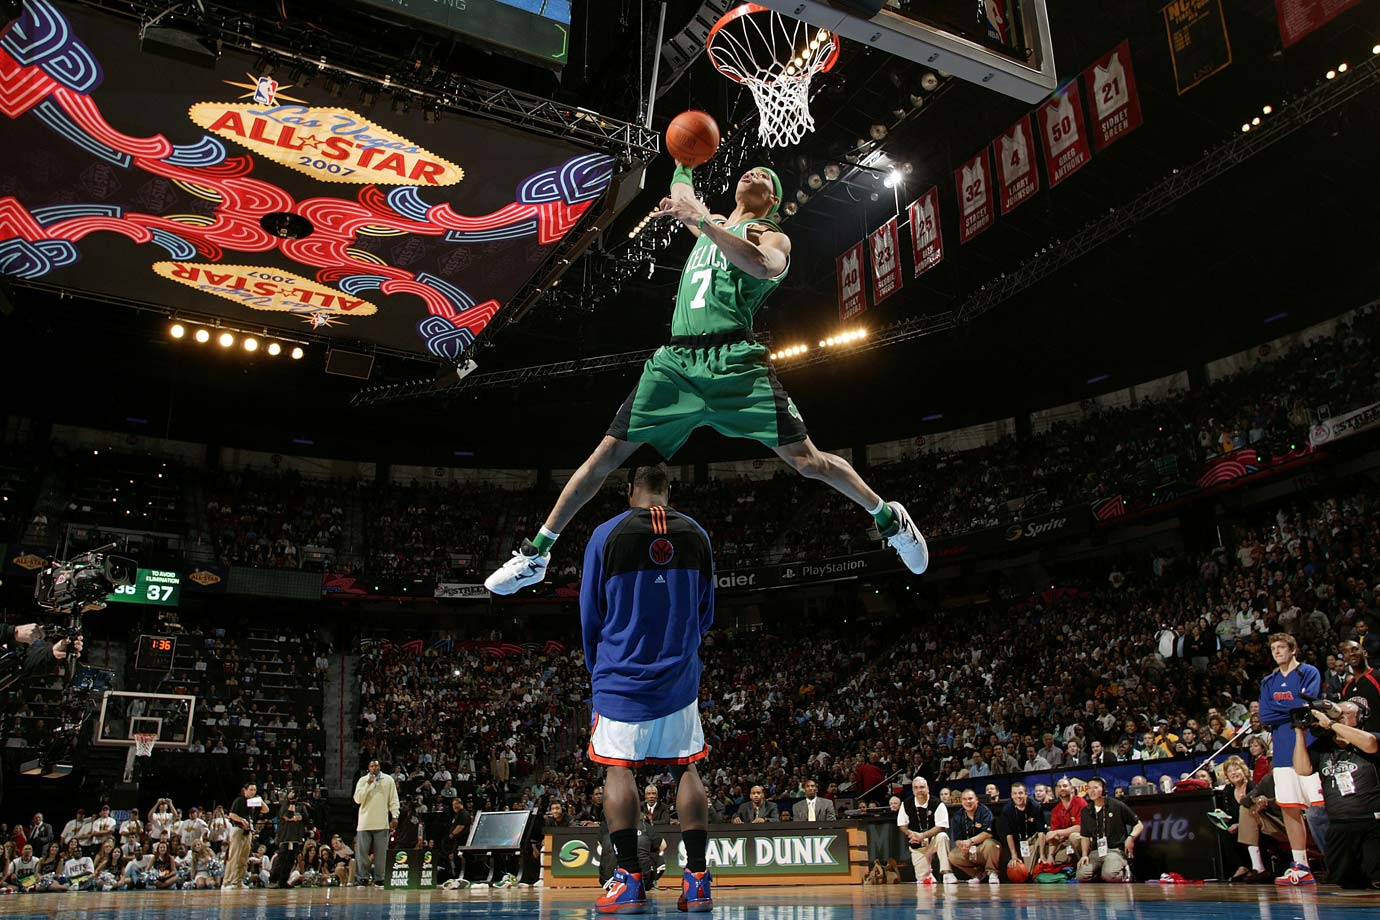 The Boston swingman paid homage to 1991 champion Dee Brown by shielding his eyes during one spectacular dunk. Green first donned Brown's No. 7 Celtics jersey and jumped over fellow competitor Nate Robinson before completing the one-handed jam.